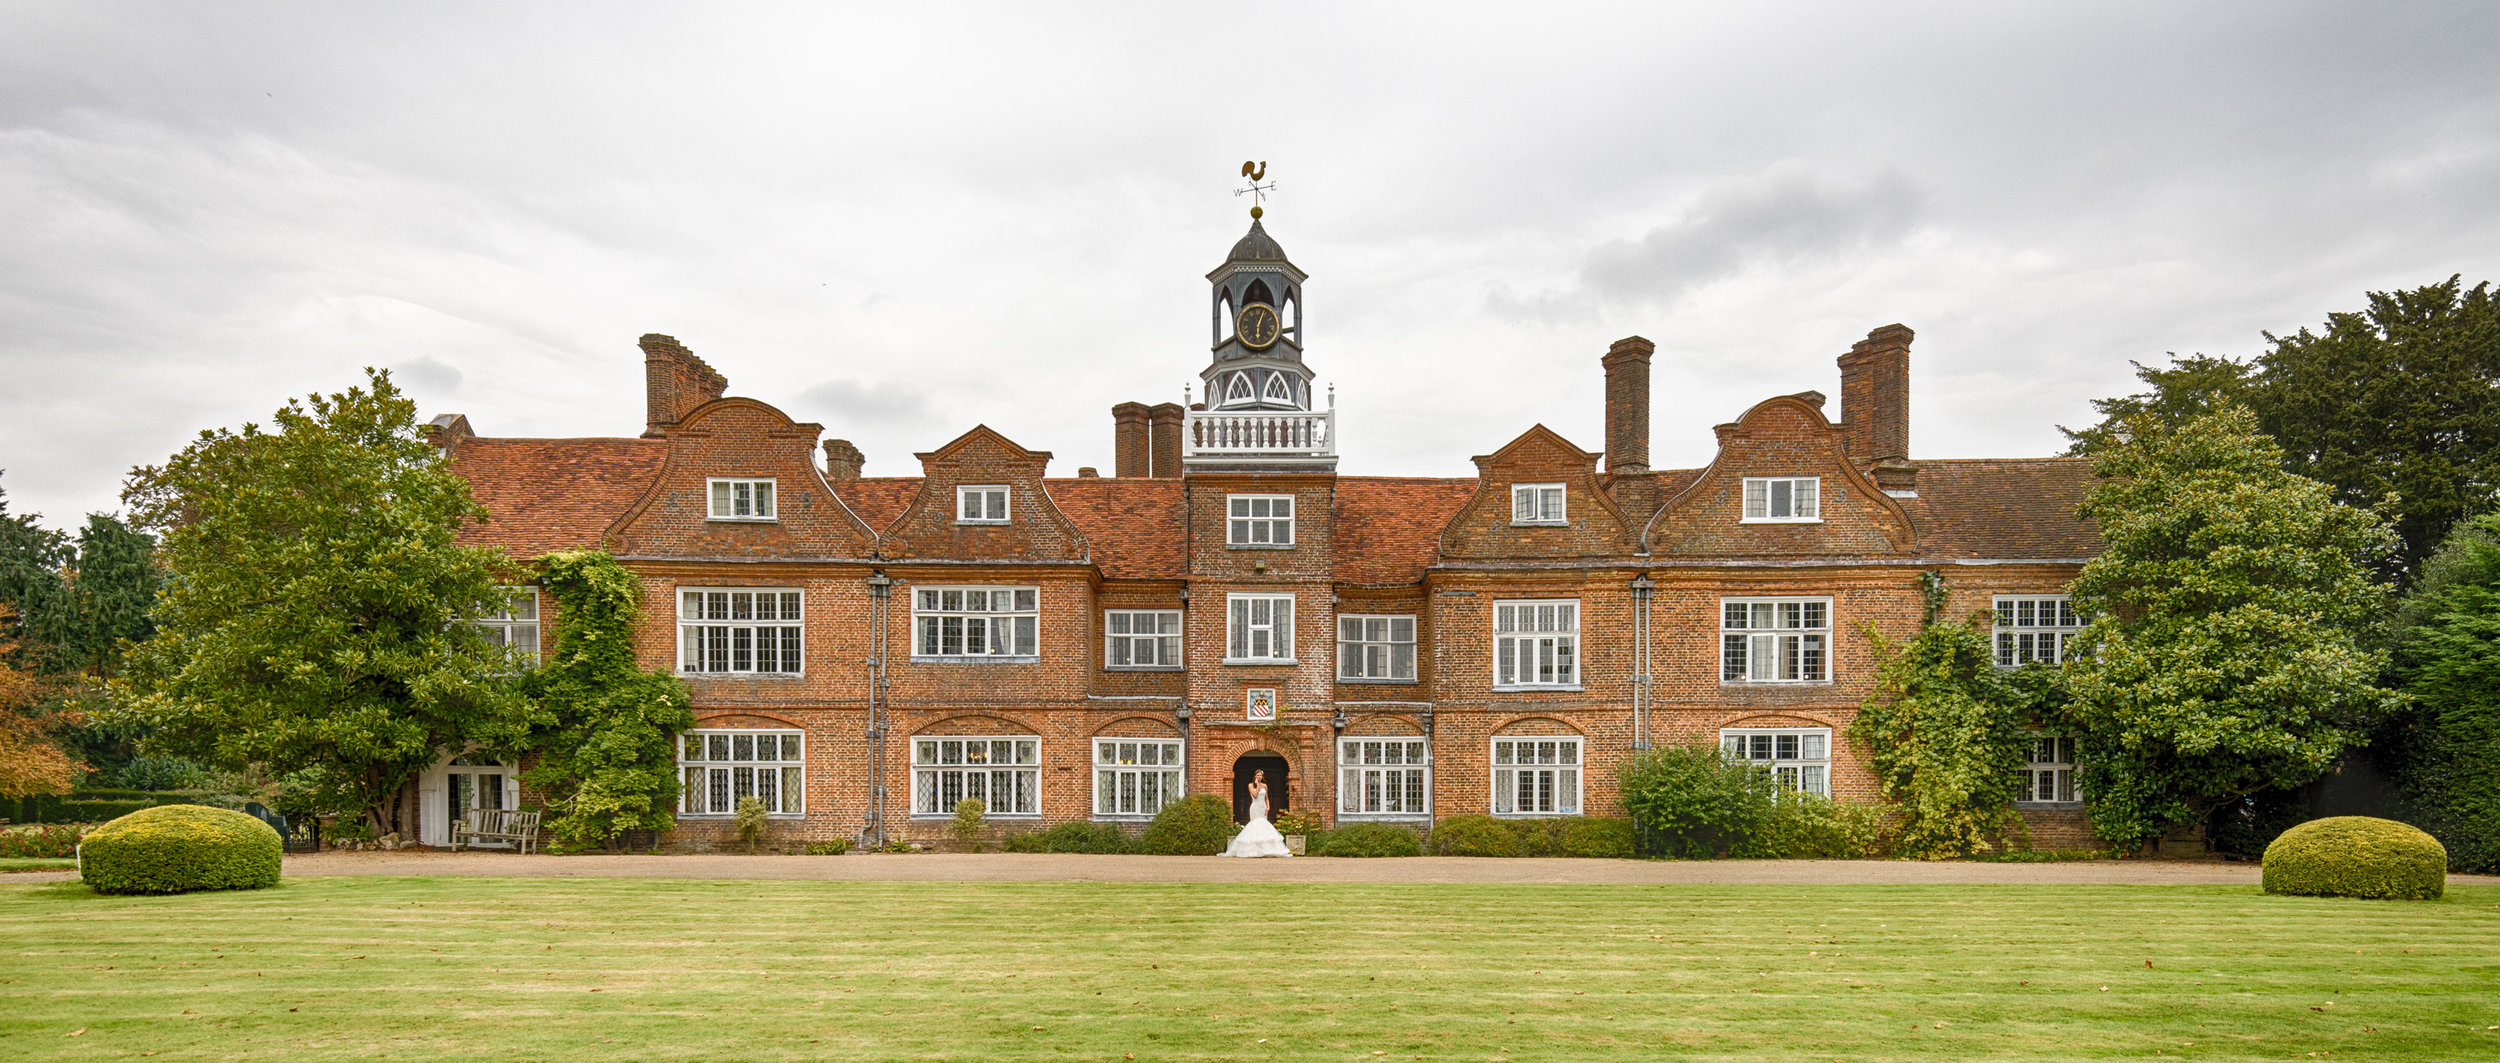 Rothamsted Manor  - Licensed for ceremoniesCapacity: 350 seated guestsEmail address: katie.simmons@rocre-rothamsted.com